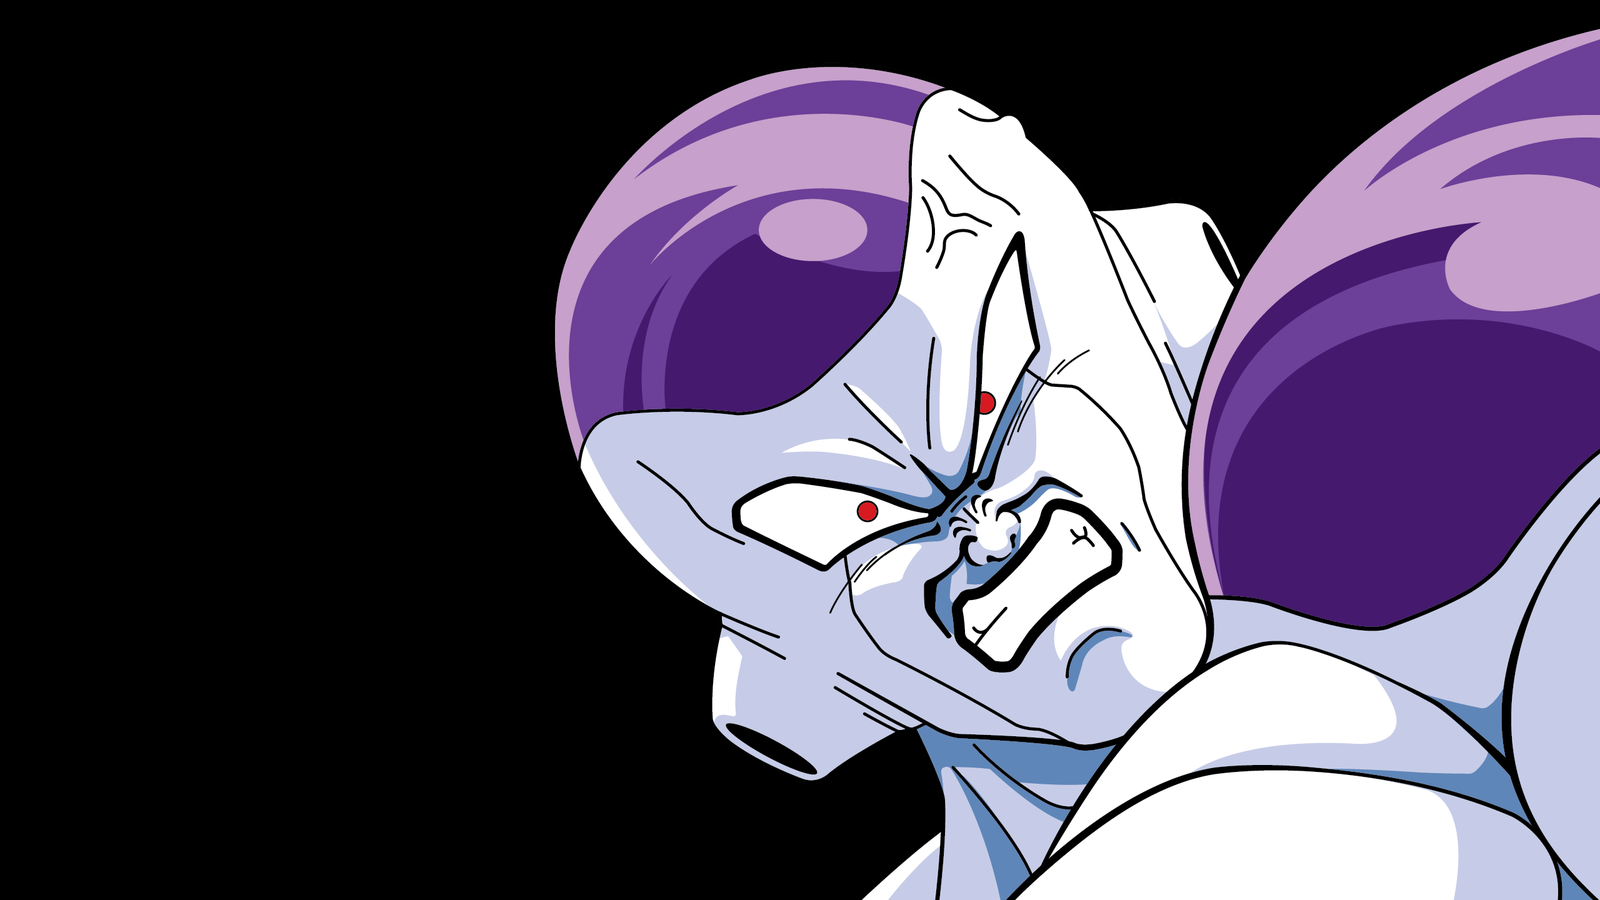 dbz frieza wallpaper - photo #27